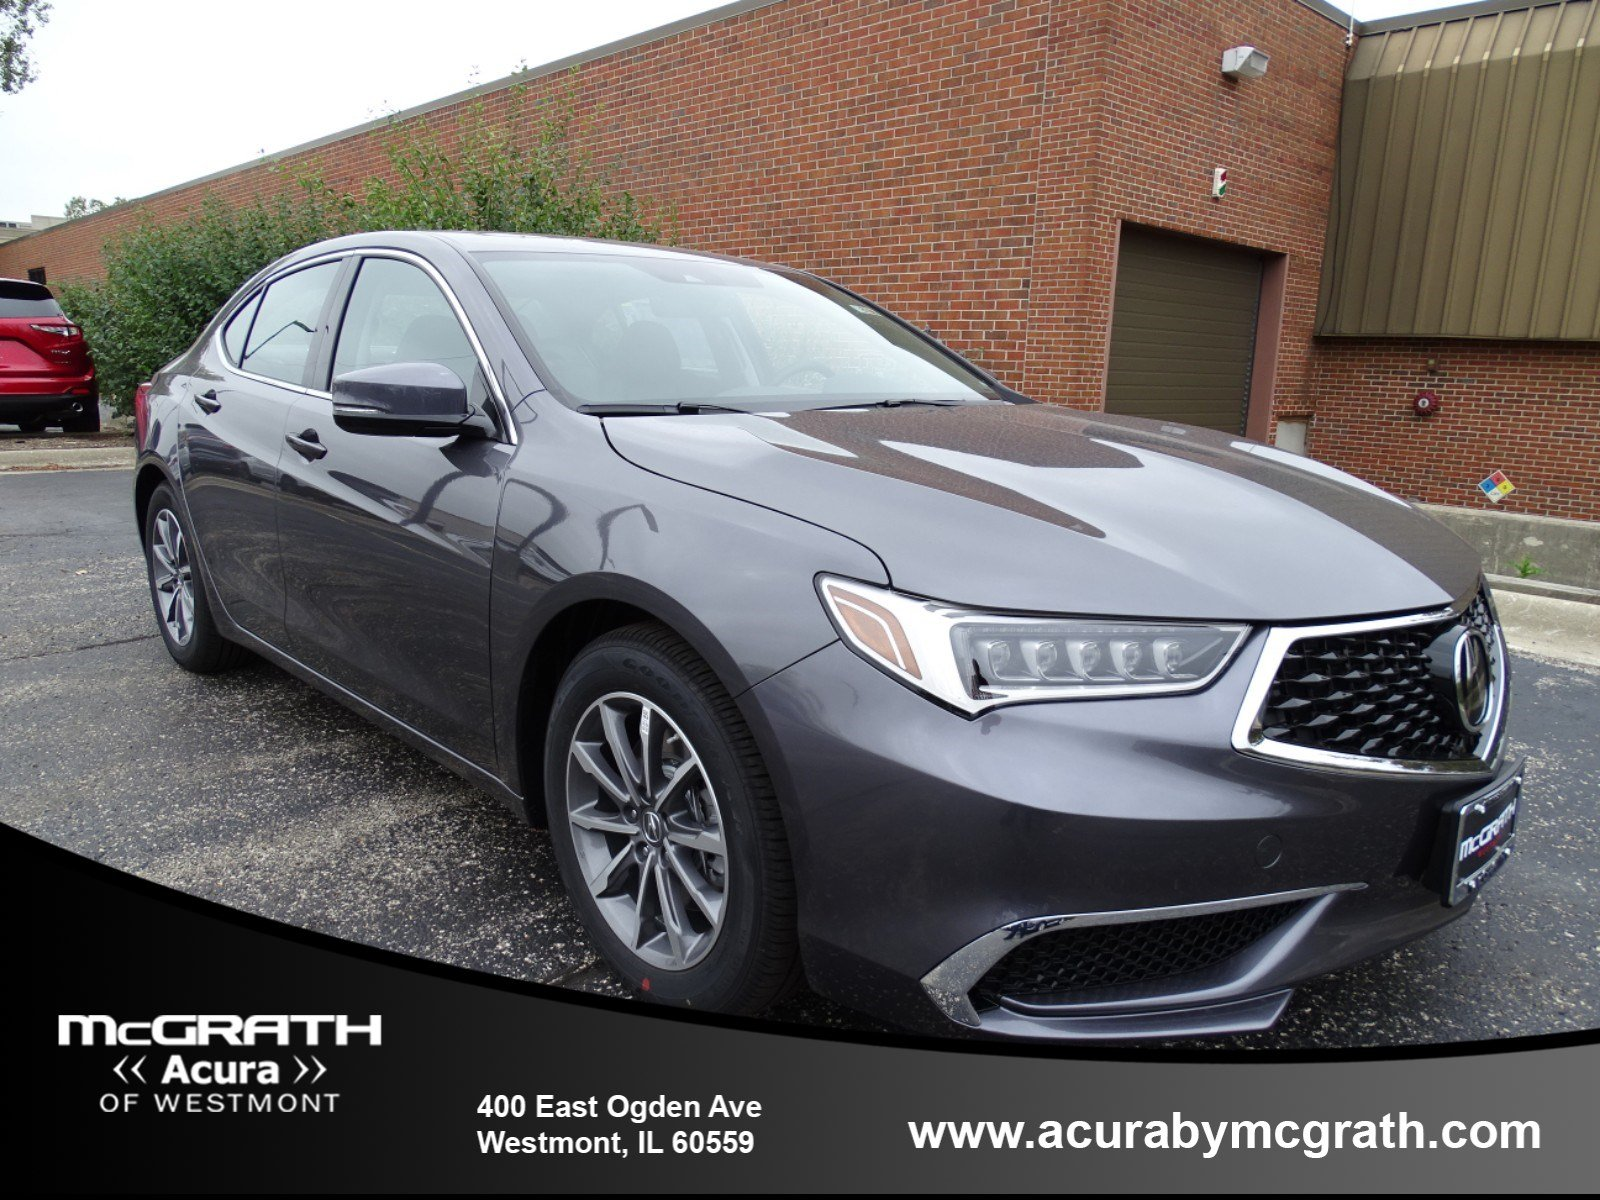 New 2019 Acura TLX 2 4 8 DCT P AWS 4dr Car in Westmont W8196